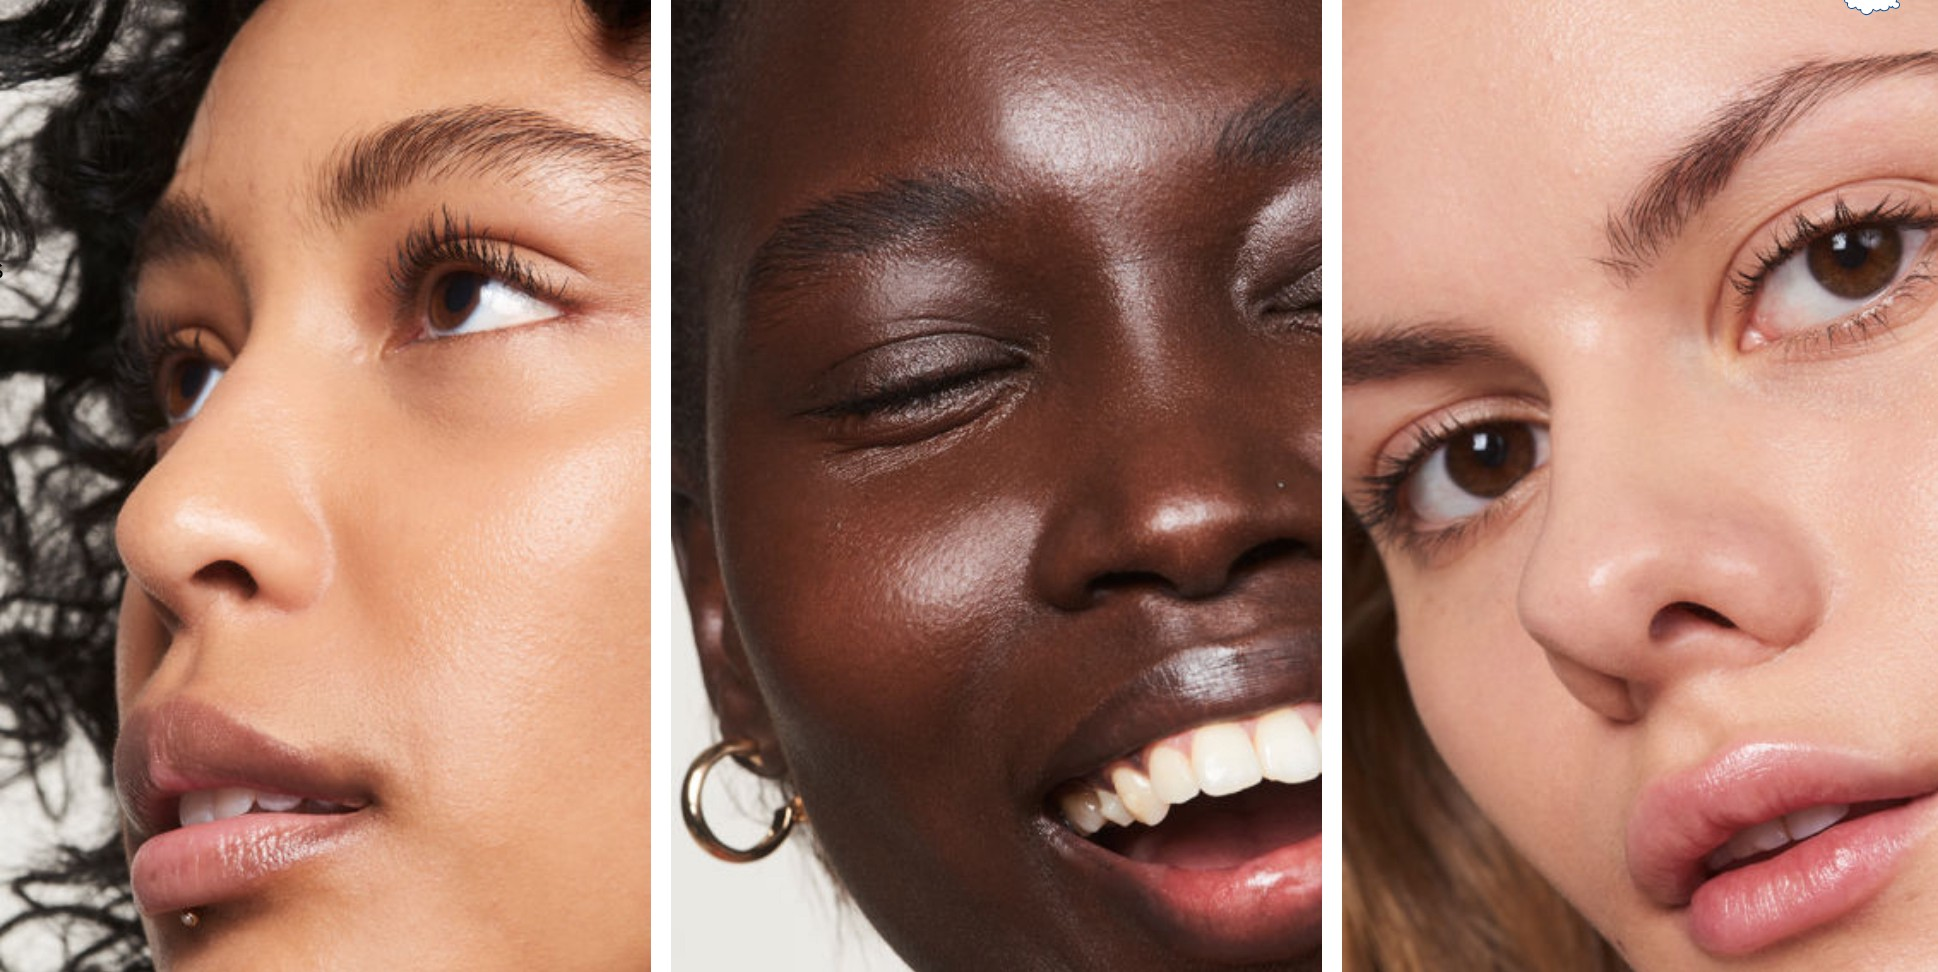 Collage of Glossier models